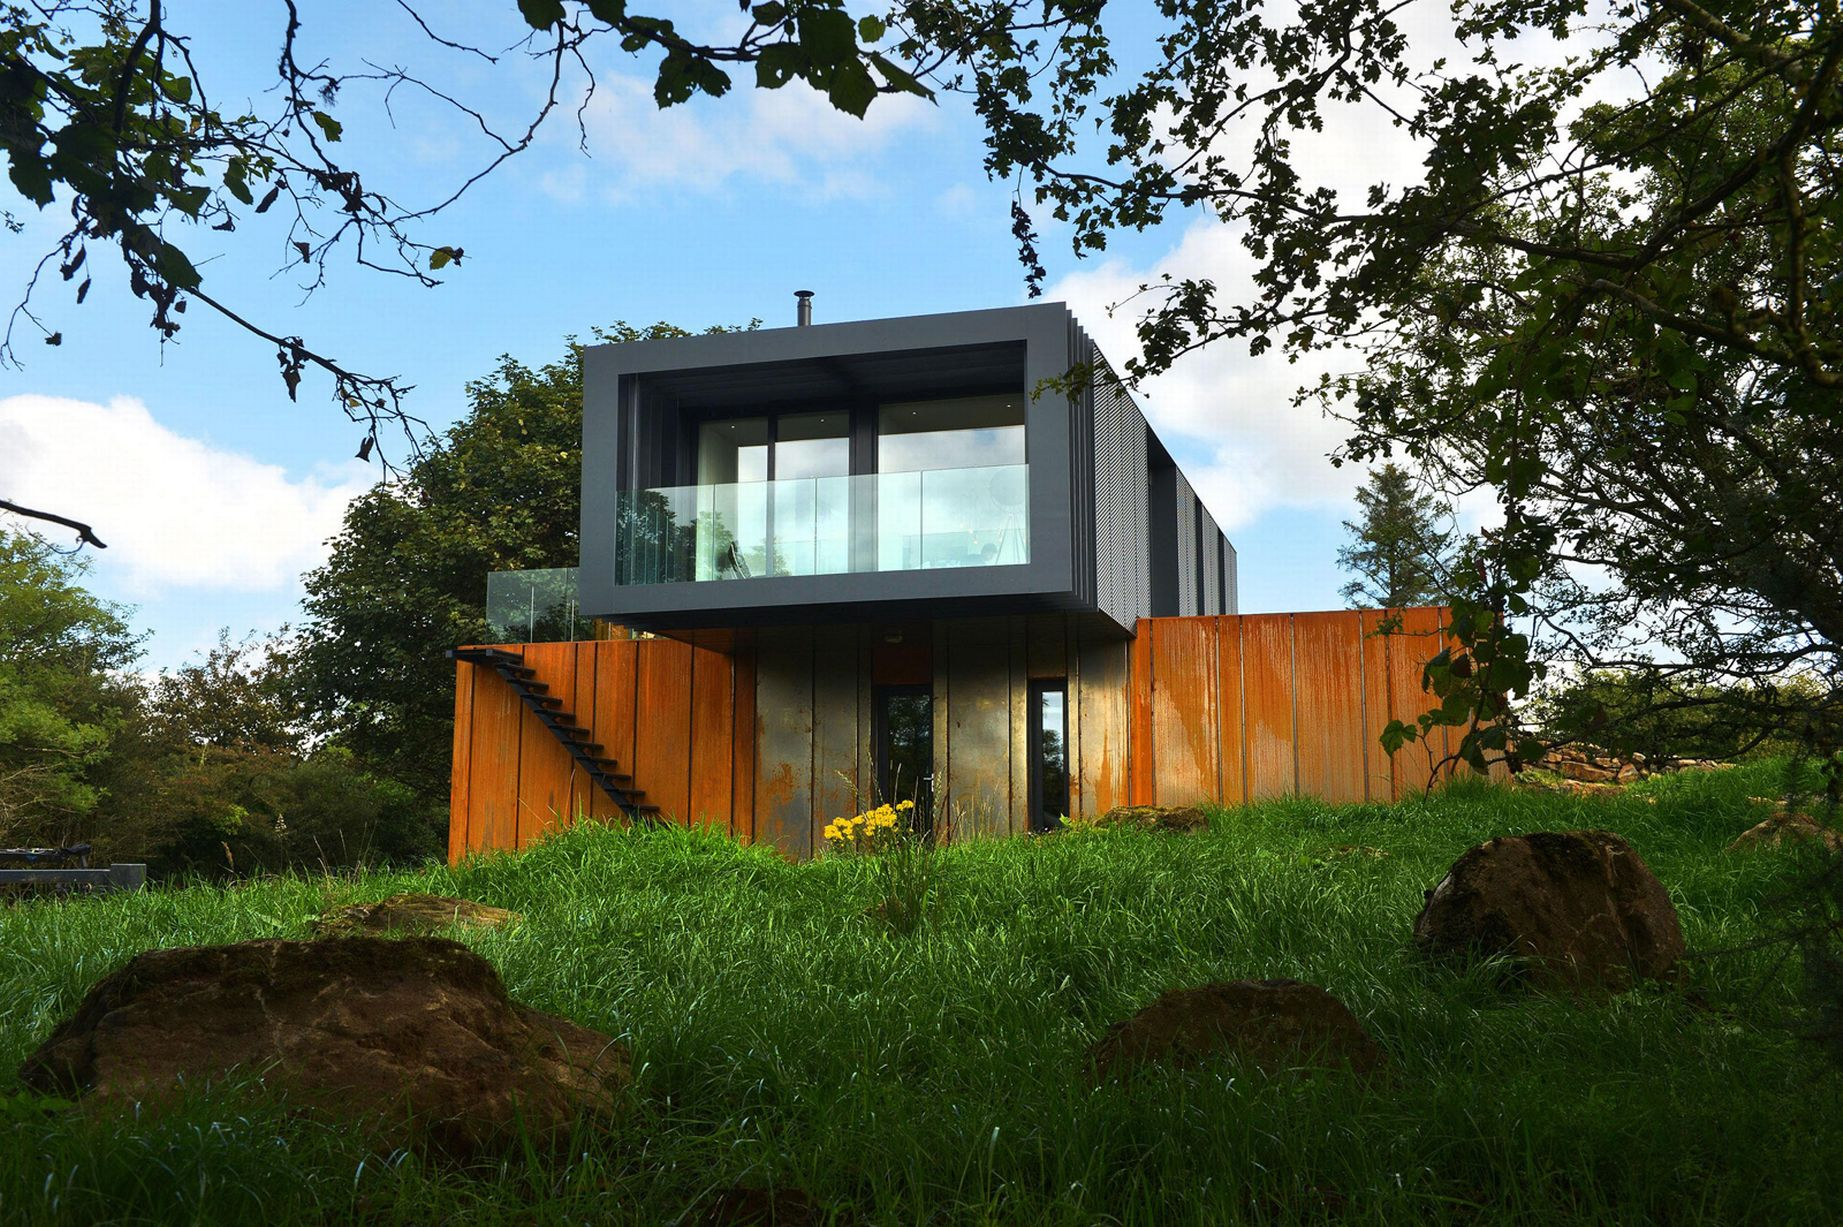 Top 10 shipping container homes container living for Home designs 4 you